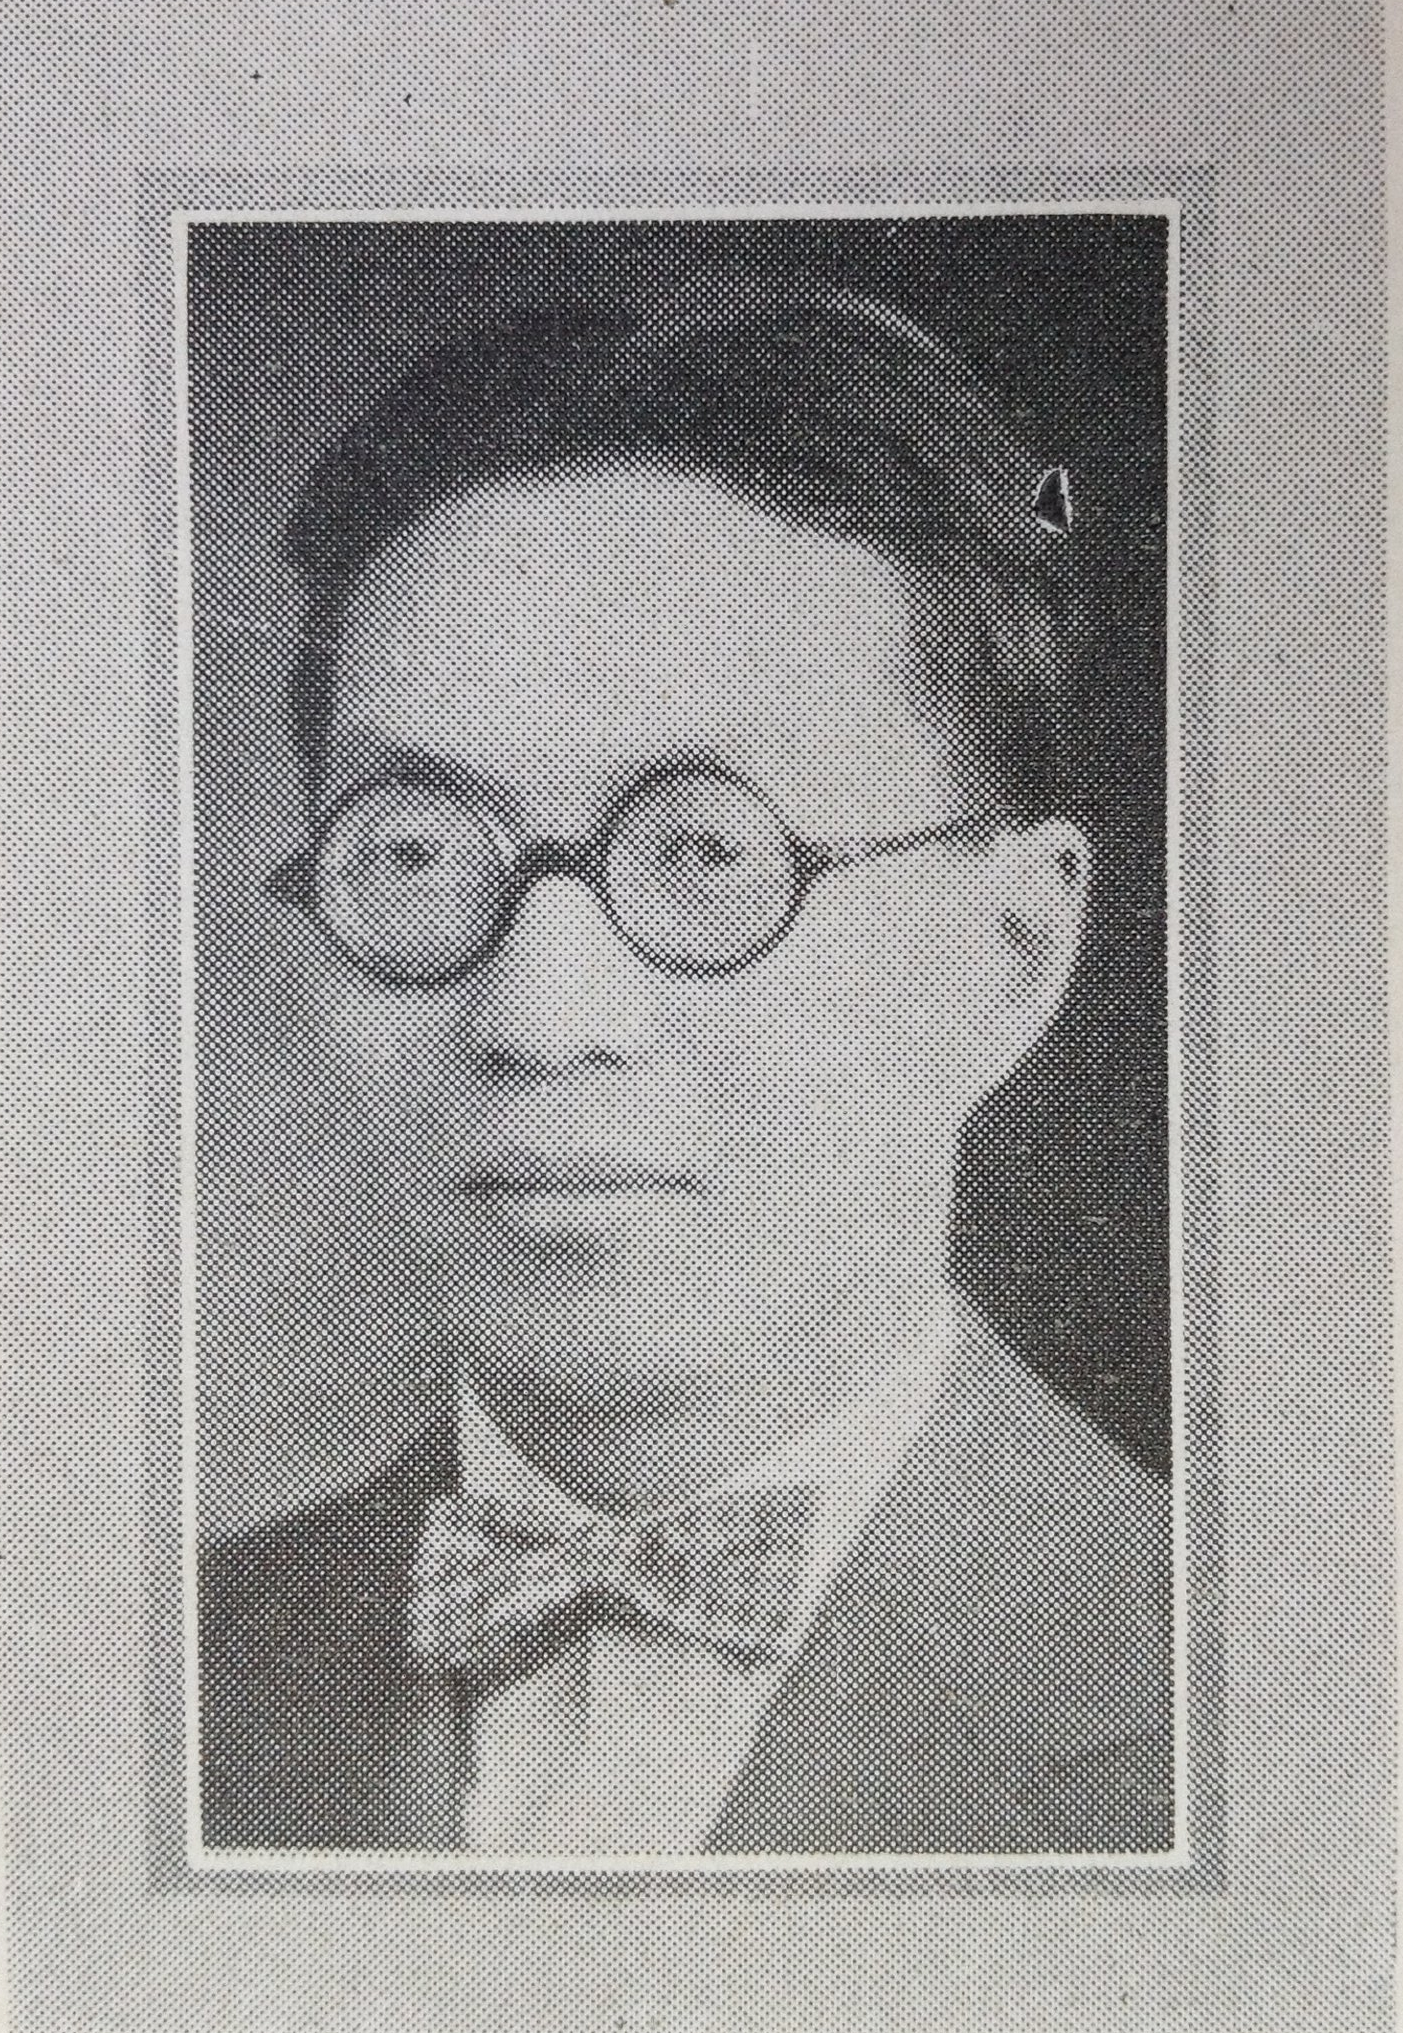 Frank C.Lin. Technique   1927.Courtesy MIT Archives and Special Collections.